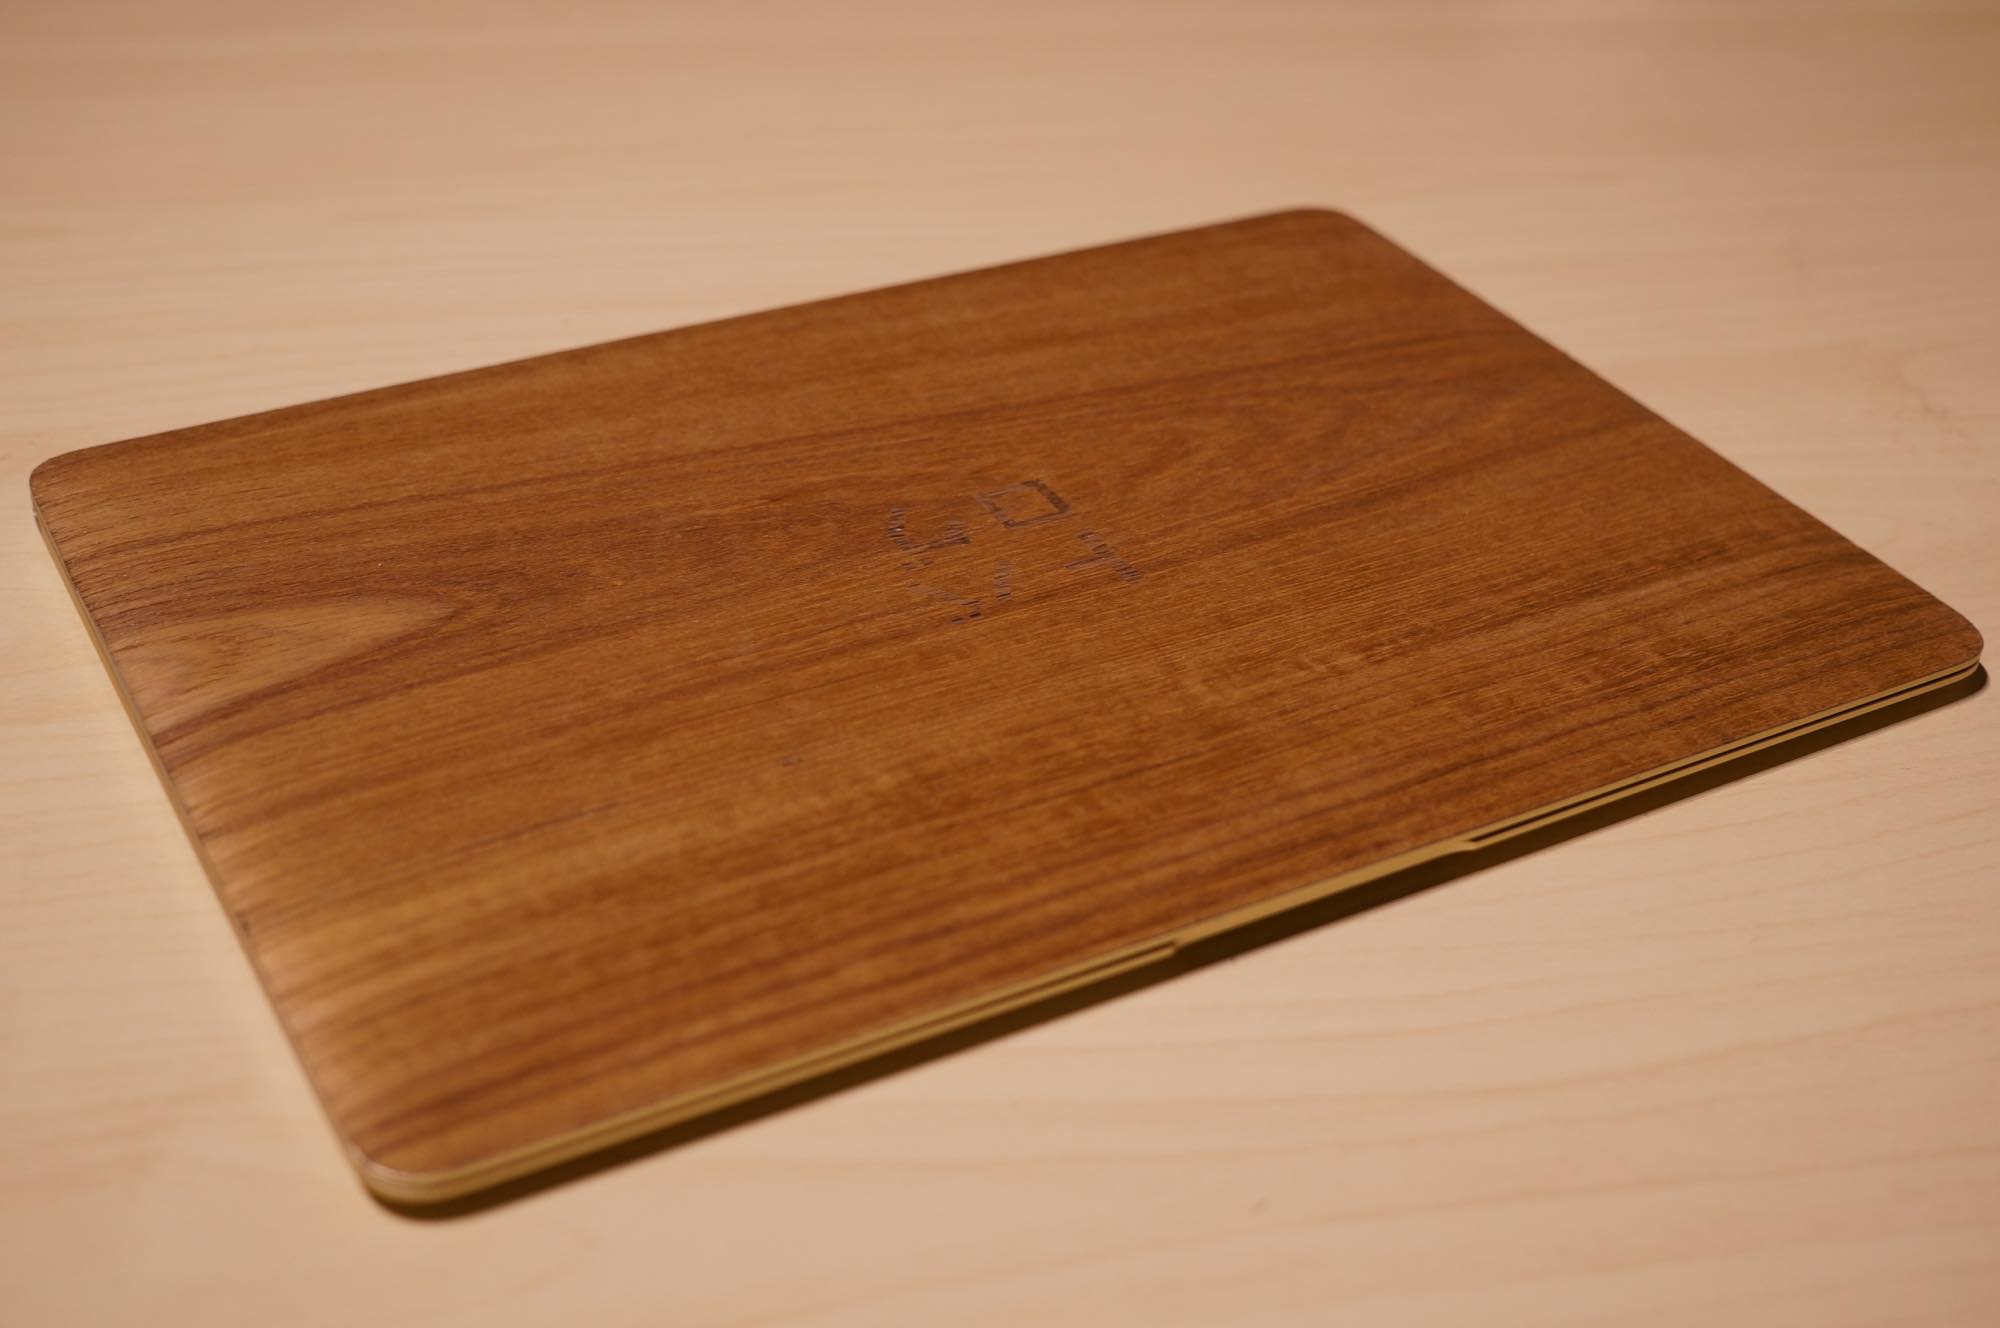 macbook-realwood-skin12